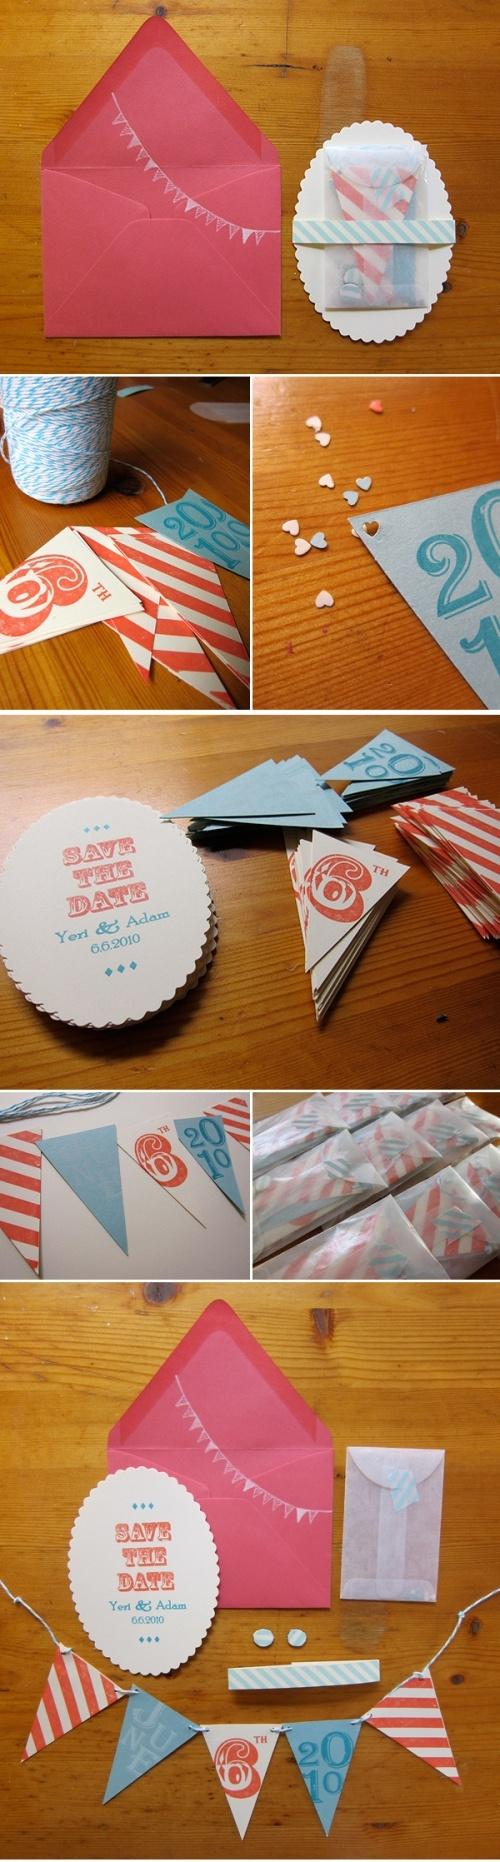 Wedding - DIY Make Your Own Flags Invitations